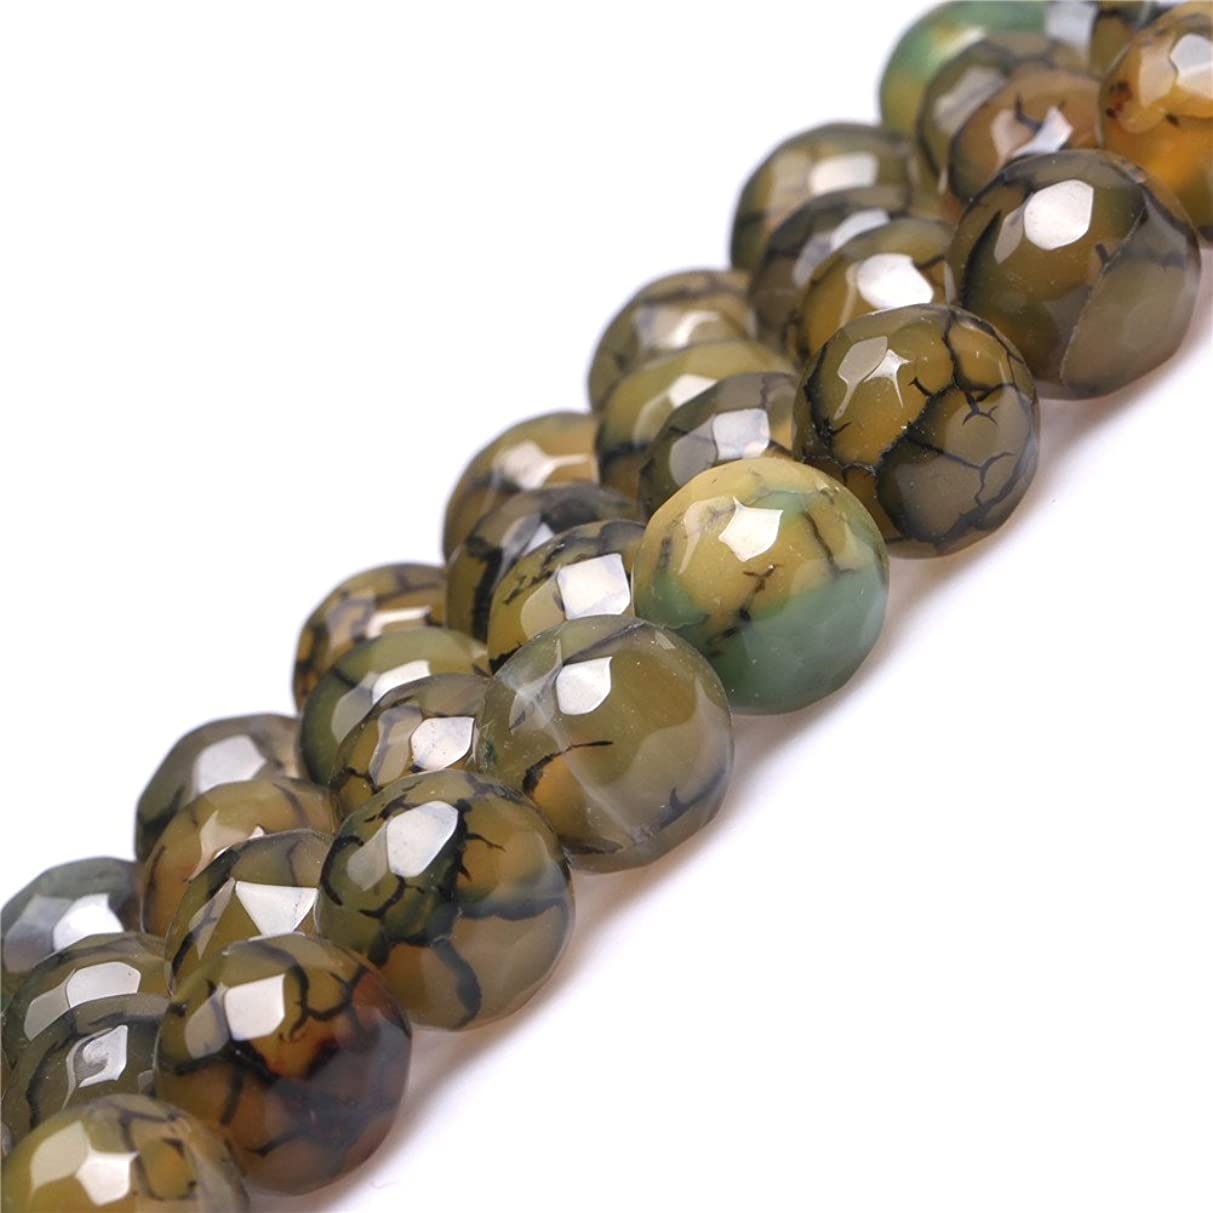 JOE FOREMAN 10mm Yellow Green Crackle Agate Semi Precious Gemstone Round Faceted Loose Beads for Jewelry Making DIY Handmade Craft Supplies 15